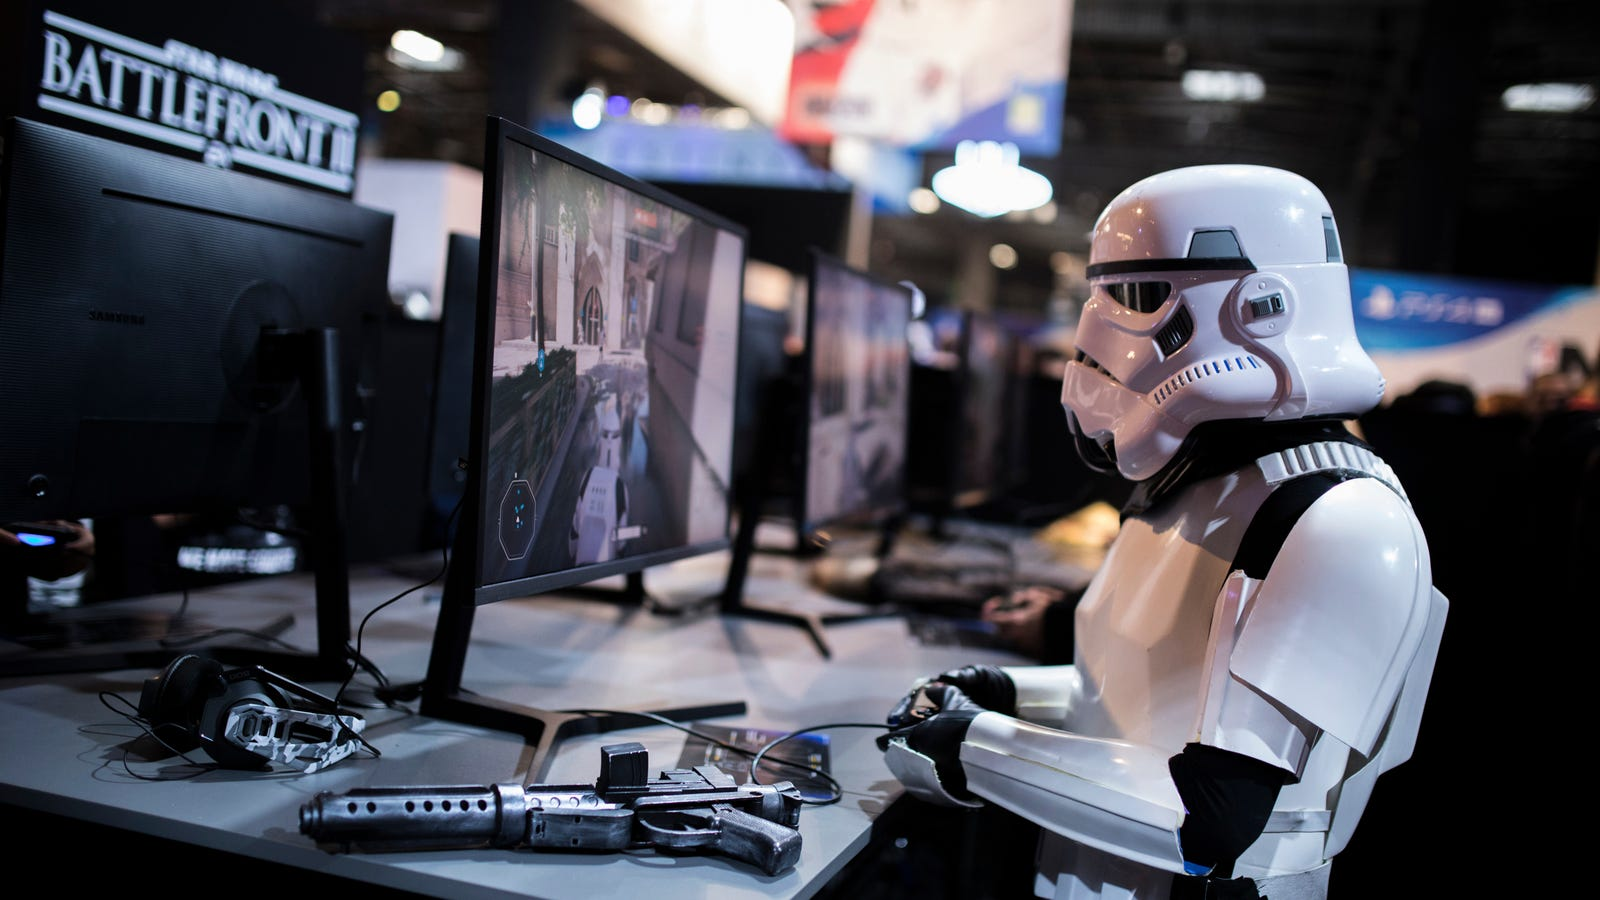 Belgian Gaming Commission Decides Battlefront II-Style Loot Boxes Are Gambling, Wants Them Banned